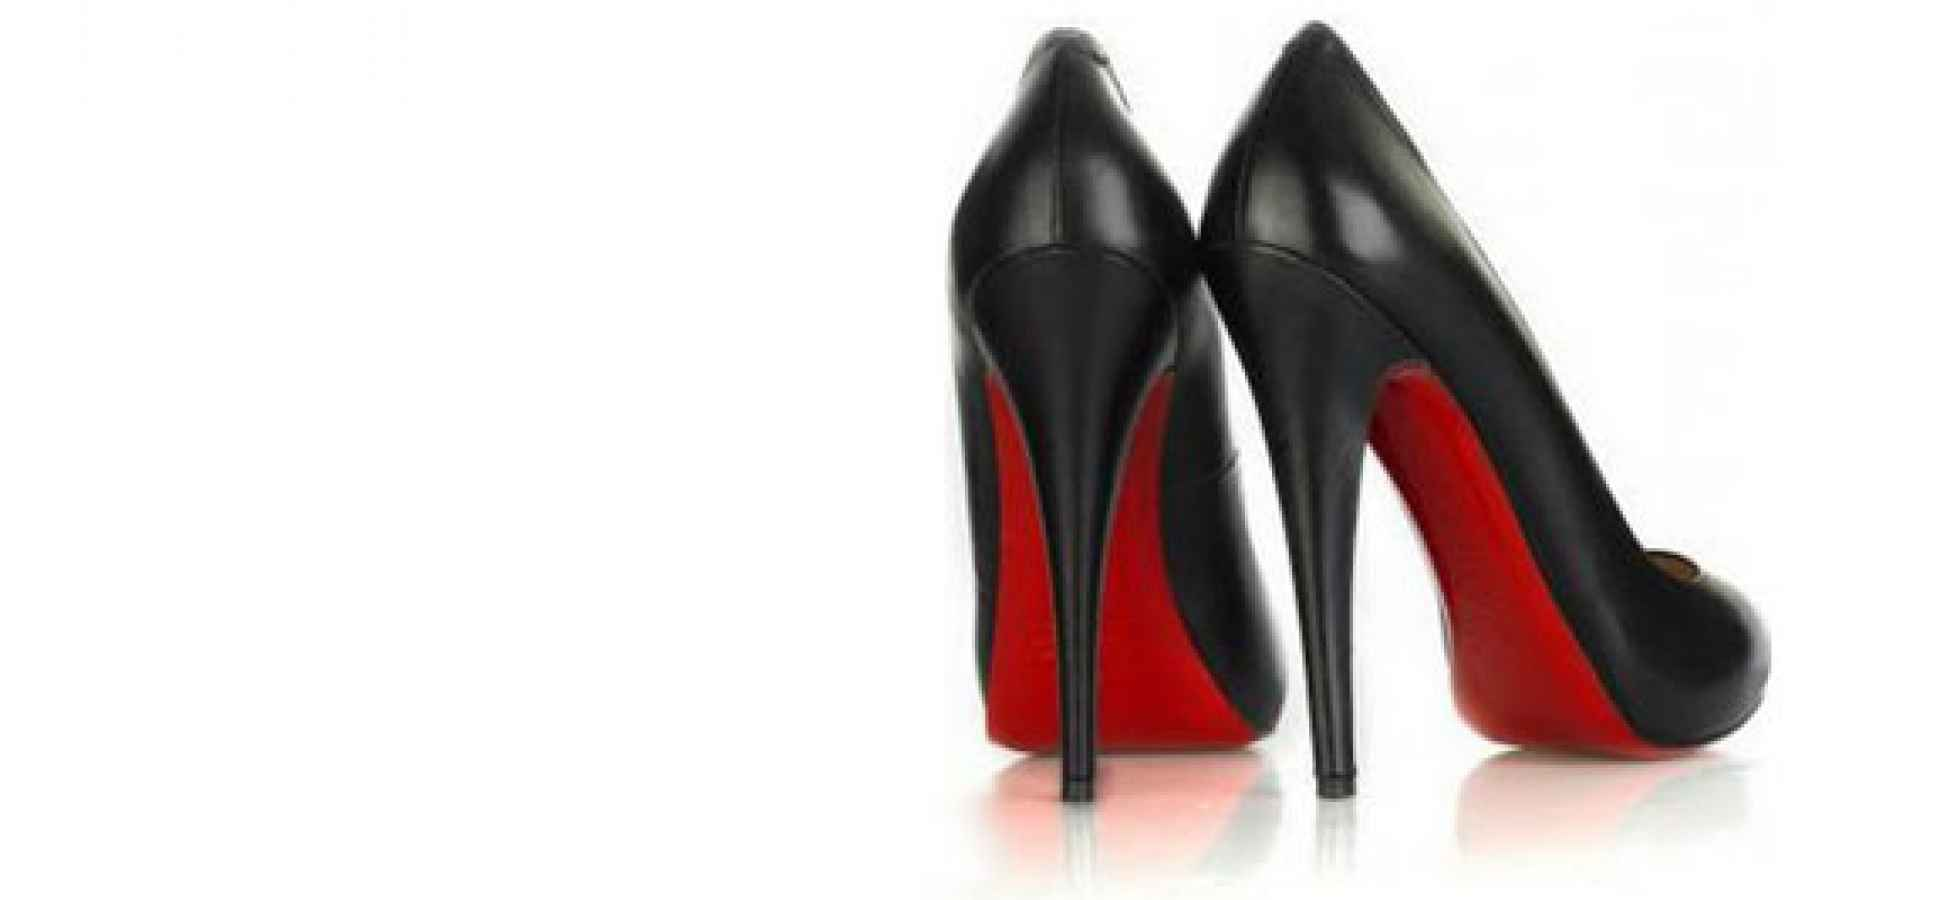 f5c22b595d73 Shoe Designer Wins Right To Protect Red Soles